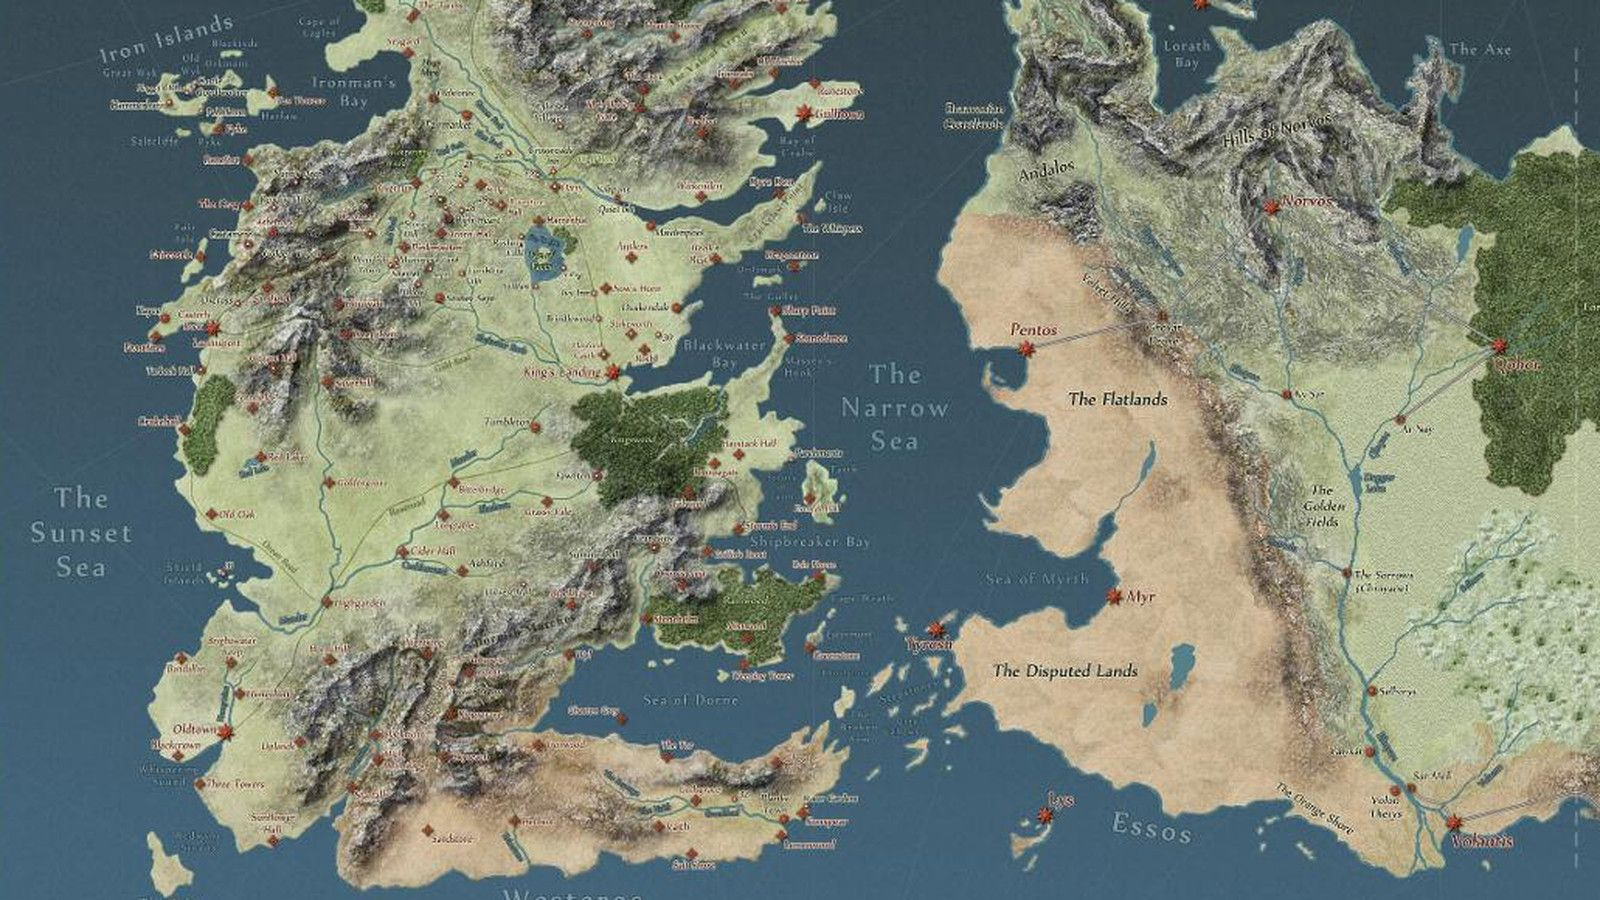 Game of Thrones Map Wallpapers - Top Free Game of Thrones ... Game Of Thrones Map Pdf on game of thrones - season 2, a golden crown, game of thrones maps hbo, united states maps pdf, a game of thrones, works based on a song of ice and fire, the prince of winterfell, fire and blood, winter is coming, themes in a song of ice and fire, game of thrones - season 1, wyoming blm maps pdf, the kingsroad, lord snow, tales of dunk and egg, map of westeros pdf, a clash of kings, the pointy end, a game of thrones collectible card game, a game of thrones: genesis, a storm of swords, game of thrones maps and families,